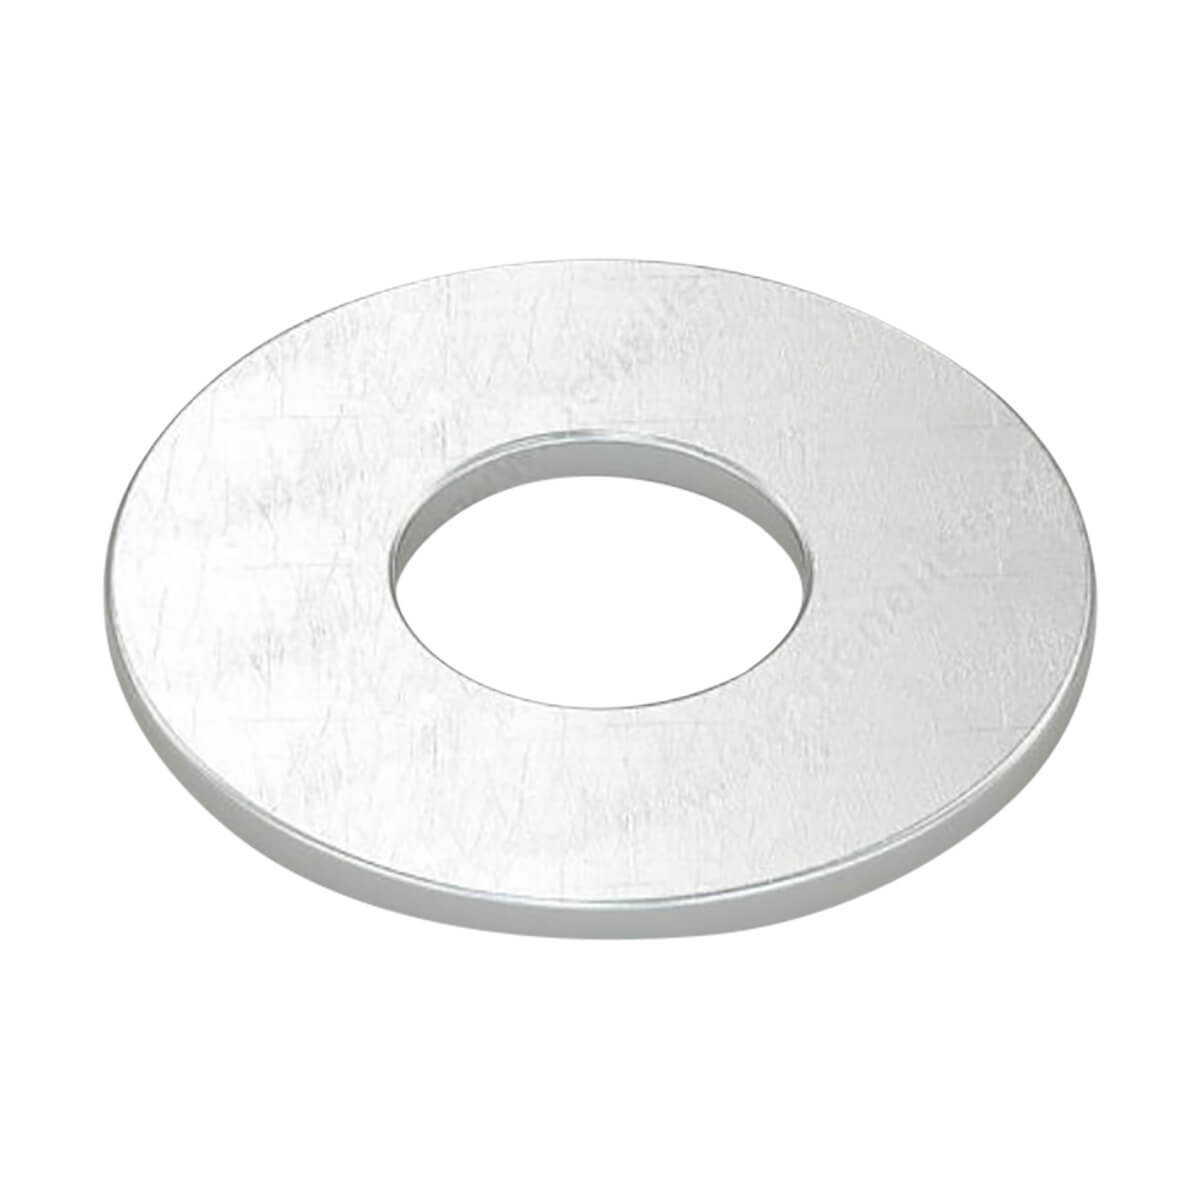 Washer - Flat - 1/4-in - 6480 Pieces